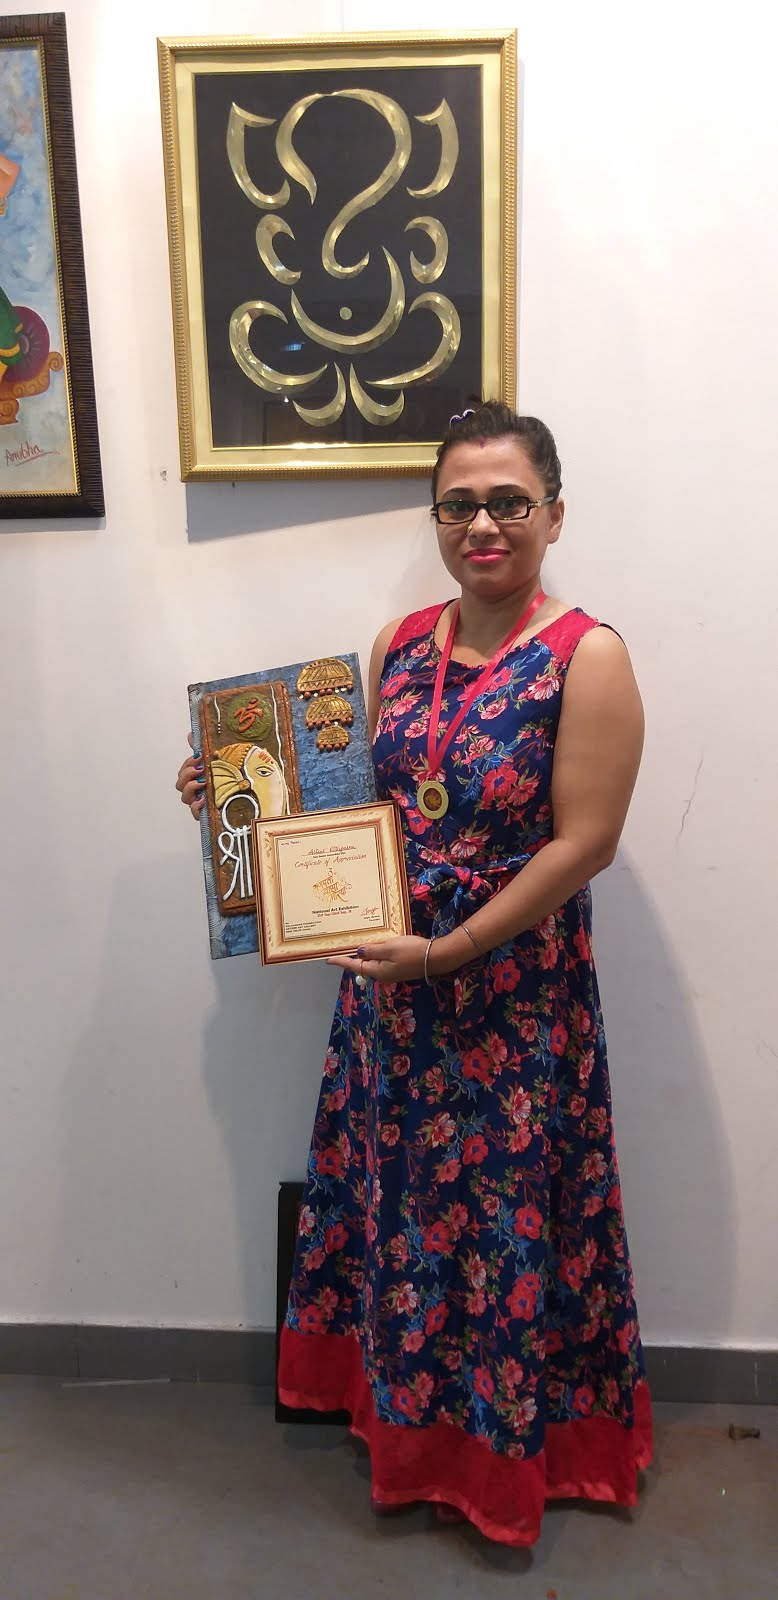 Certified and getting medal for first exhibite my paintings at Artizen Art Gallery